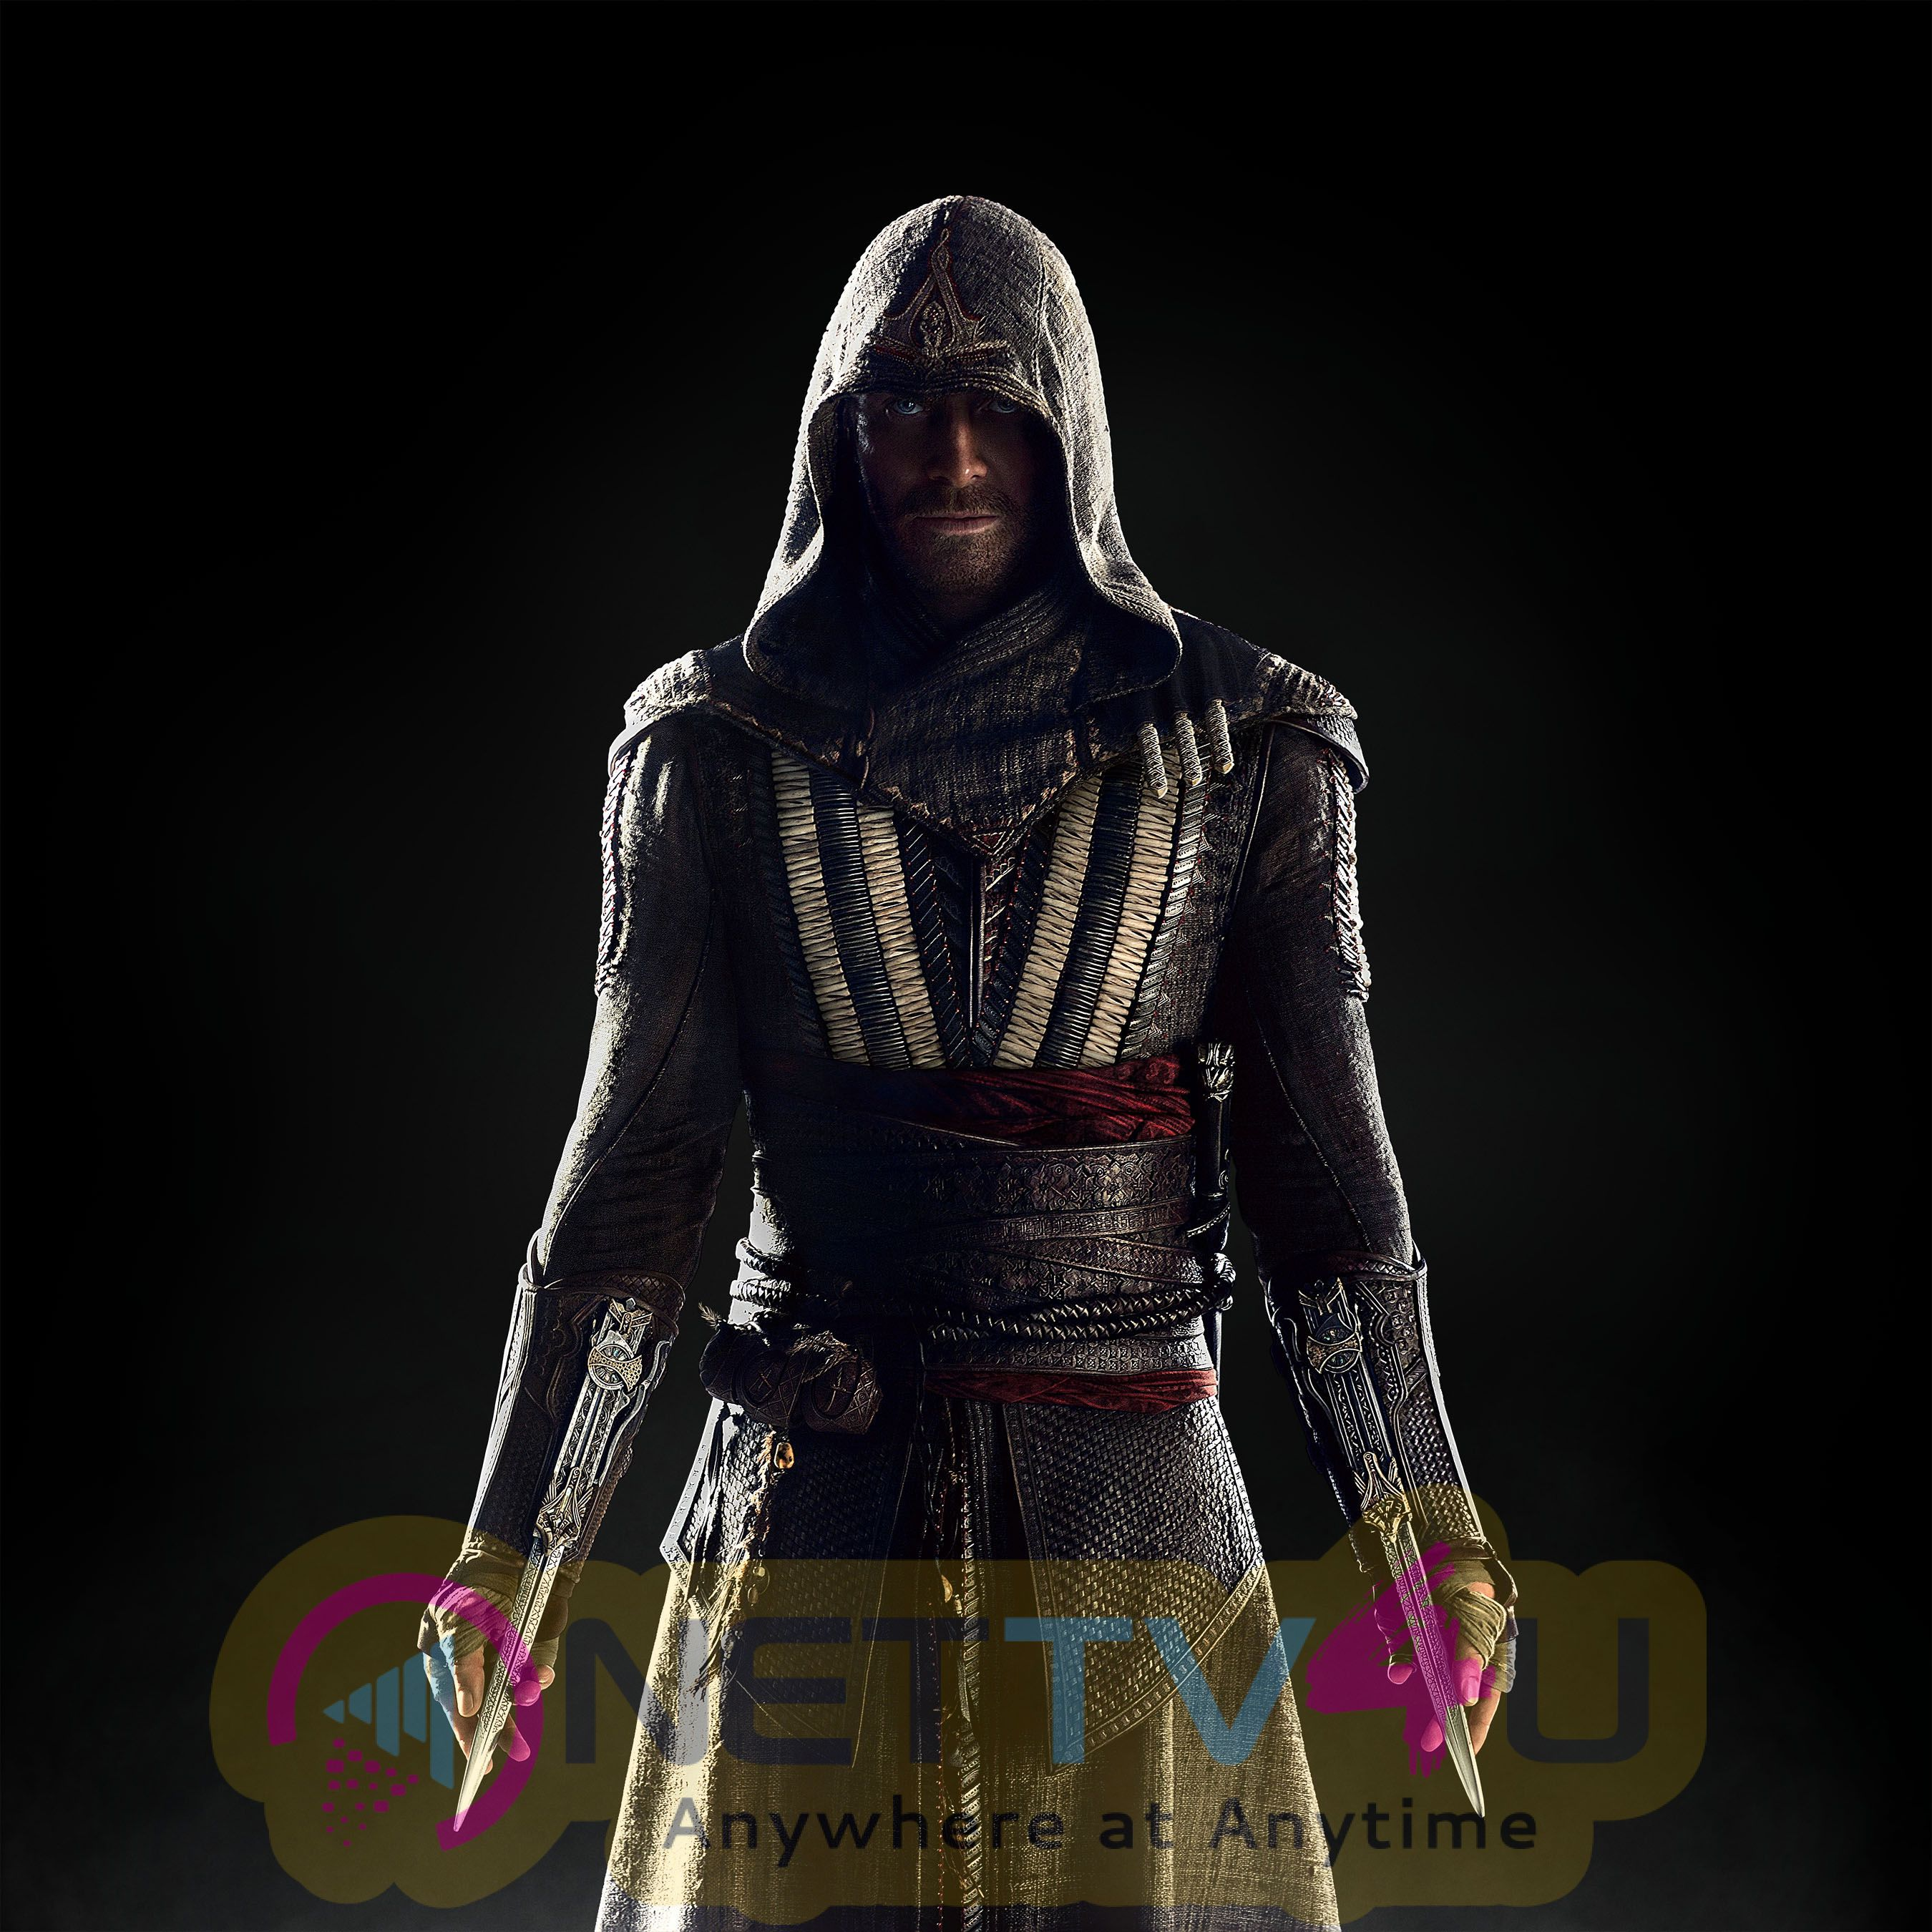 Assassin's Creed Movie Latest High Quality Stills